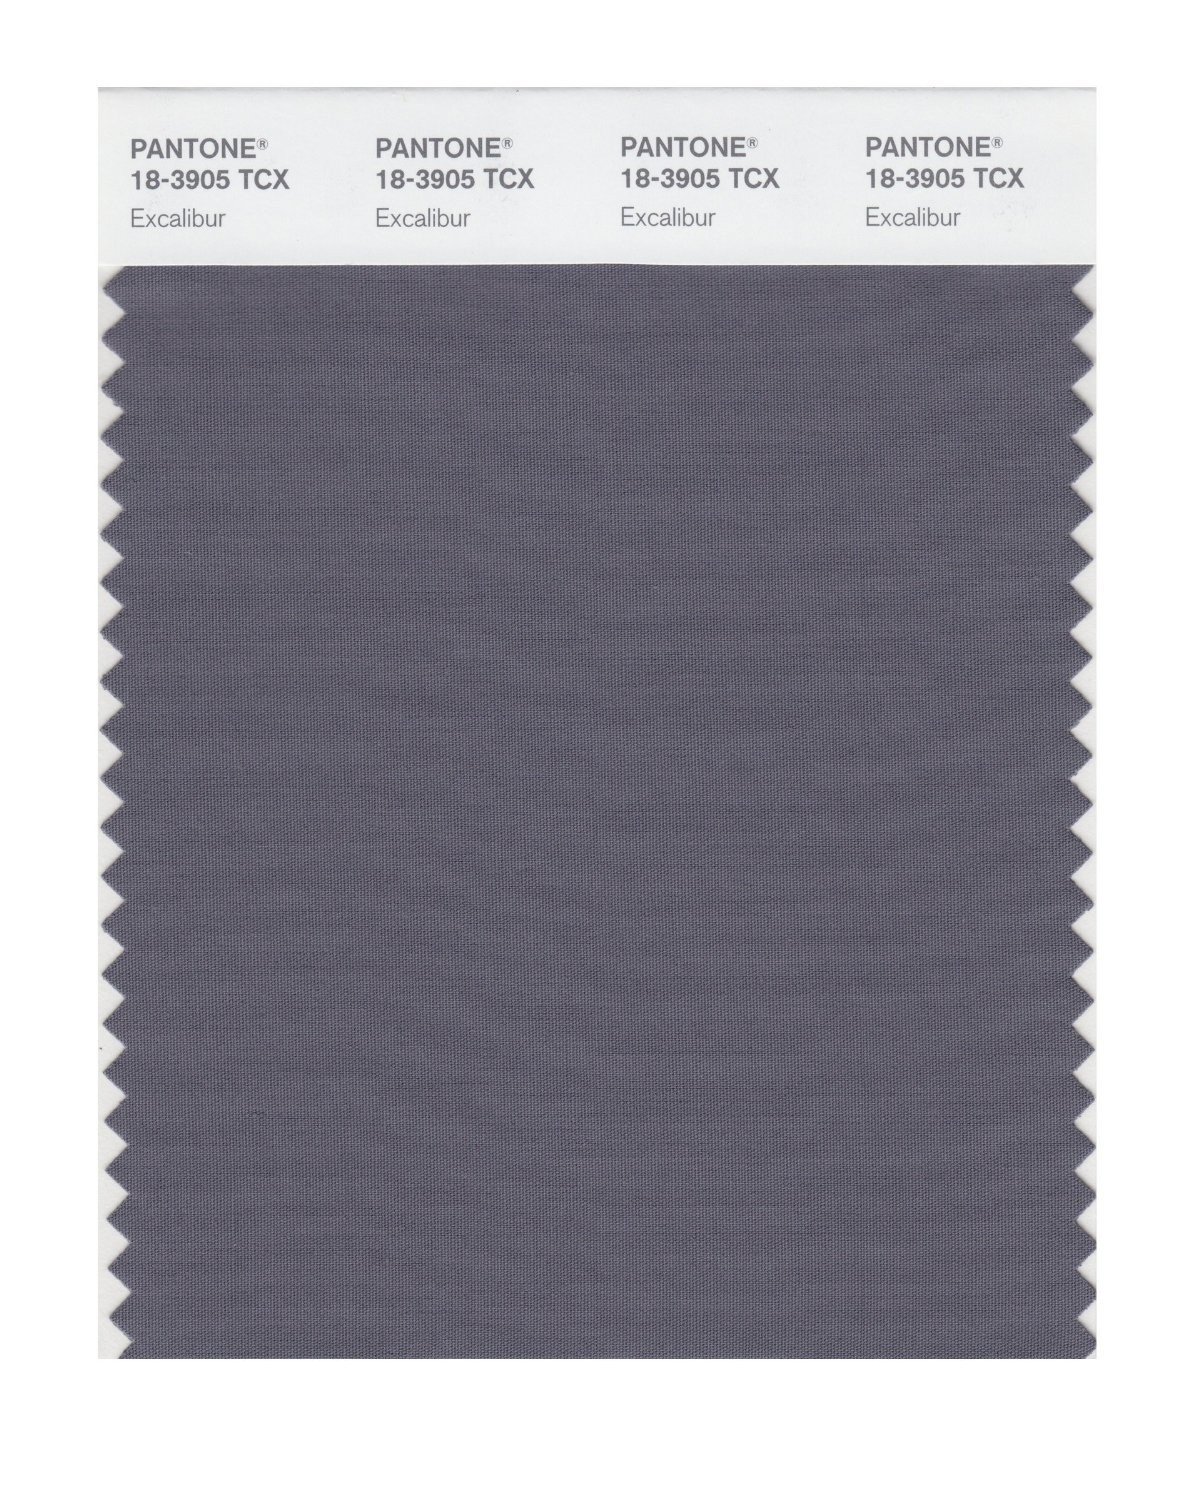 Pantone 18-3905 TCX Swatch Card Excalibur